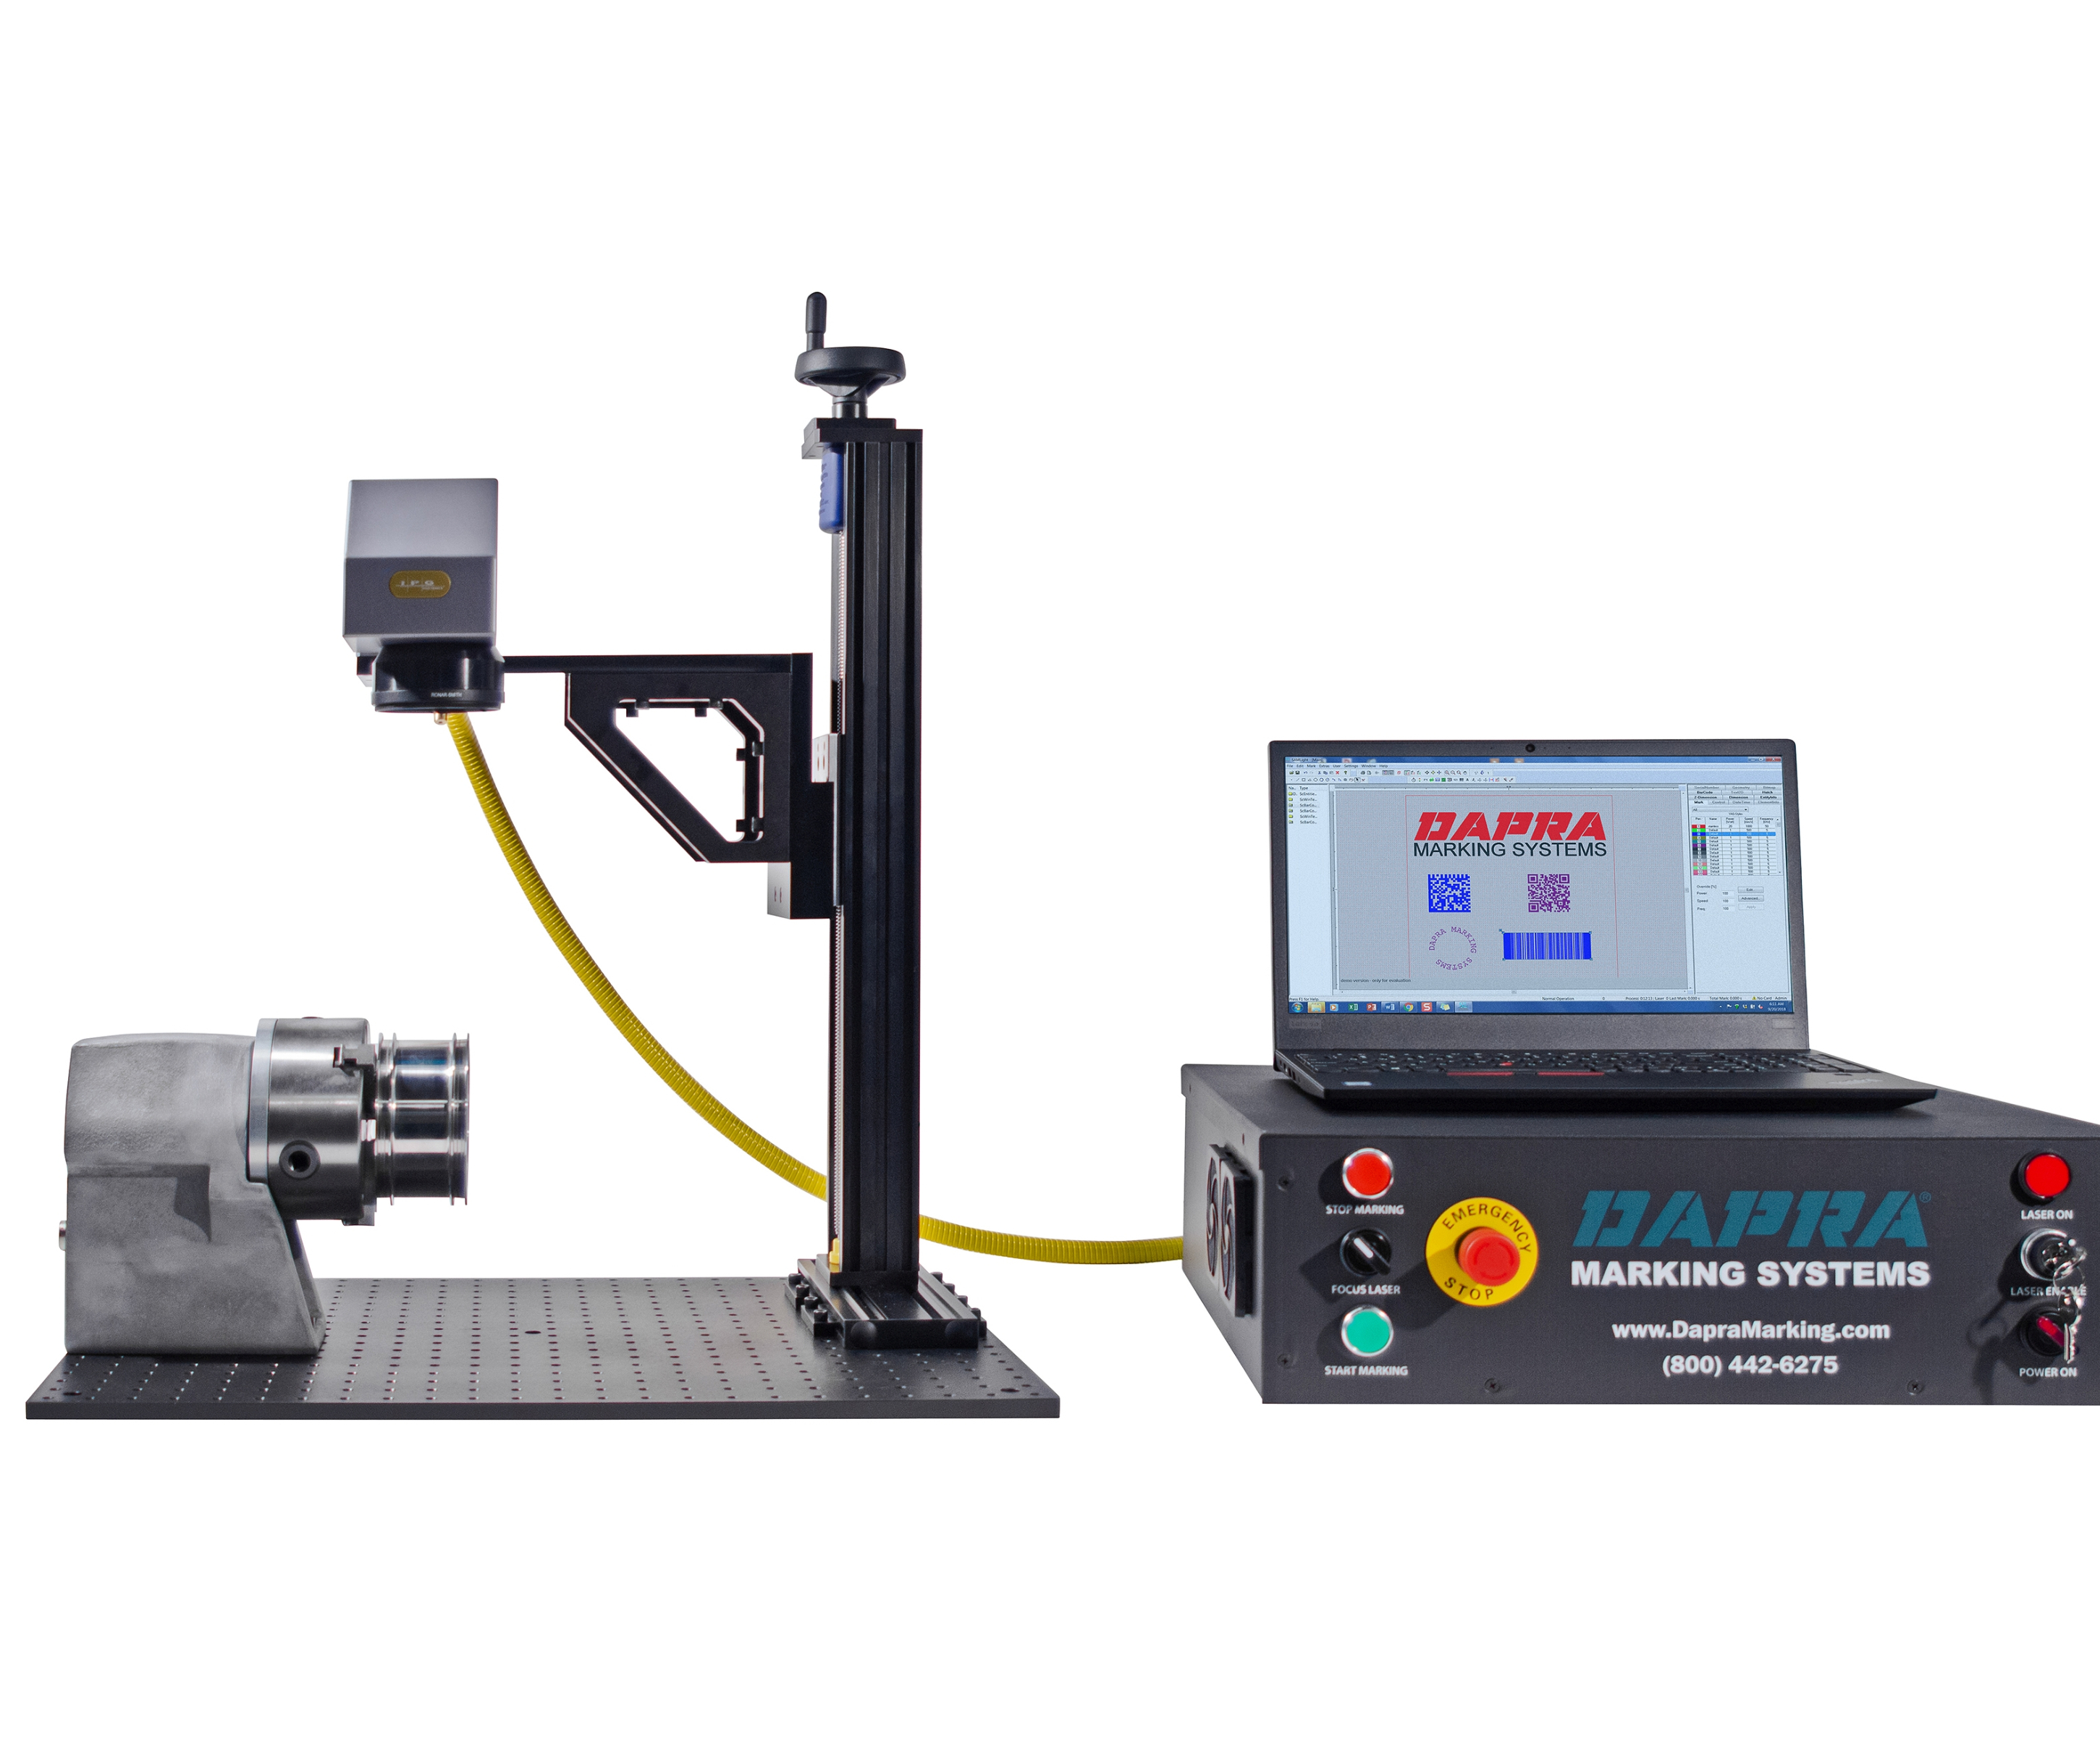 Dapra provides fiber laser marking products.